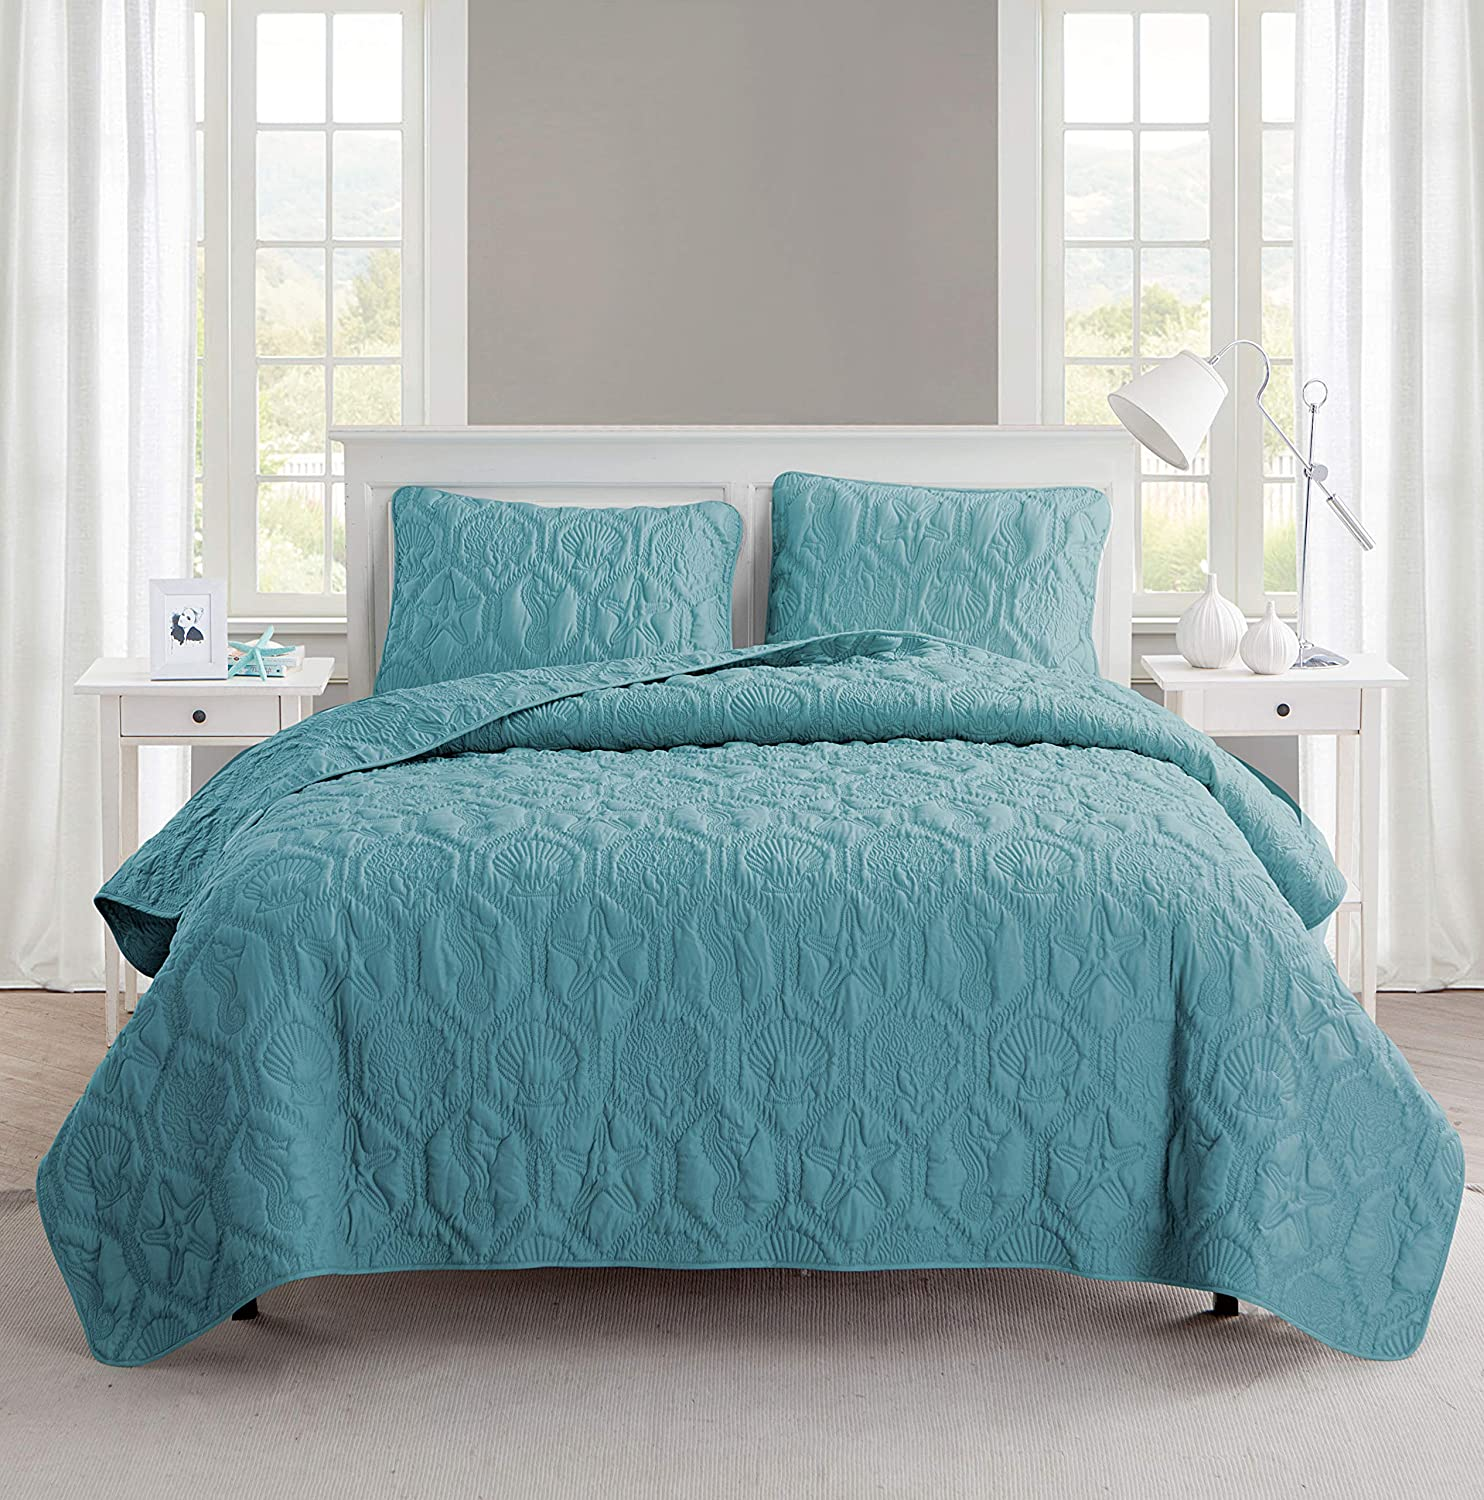 VCNY Home Shore Quilt Set King bluee,